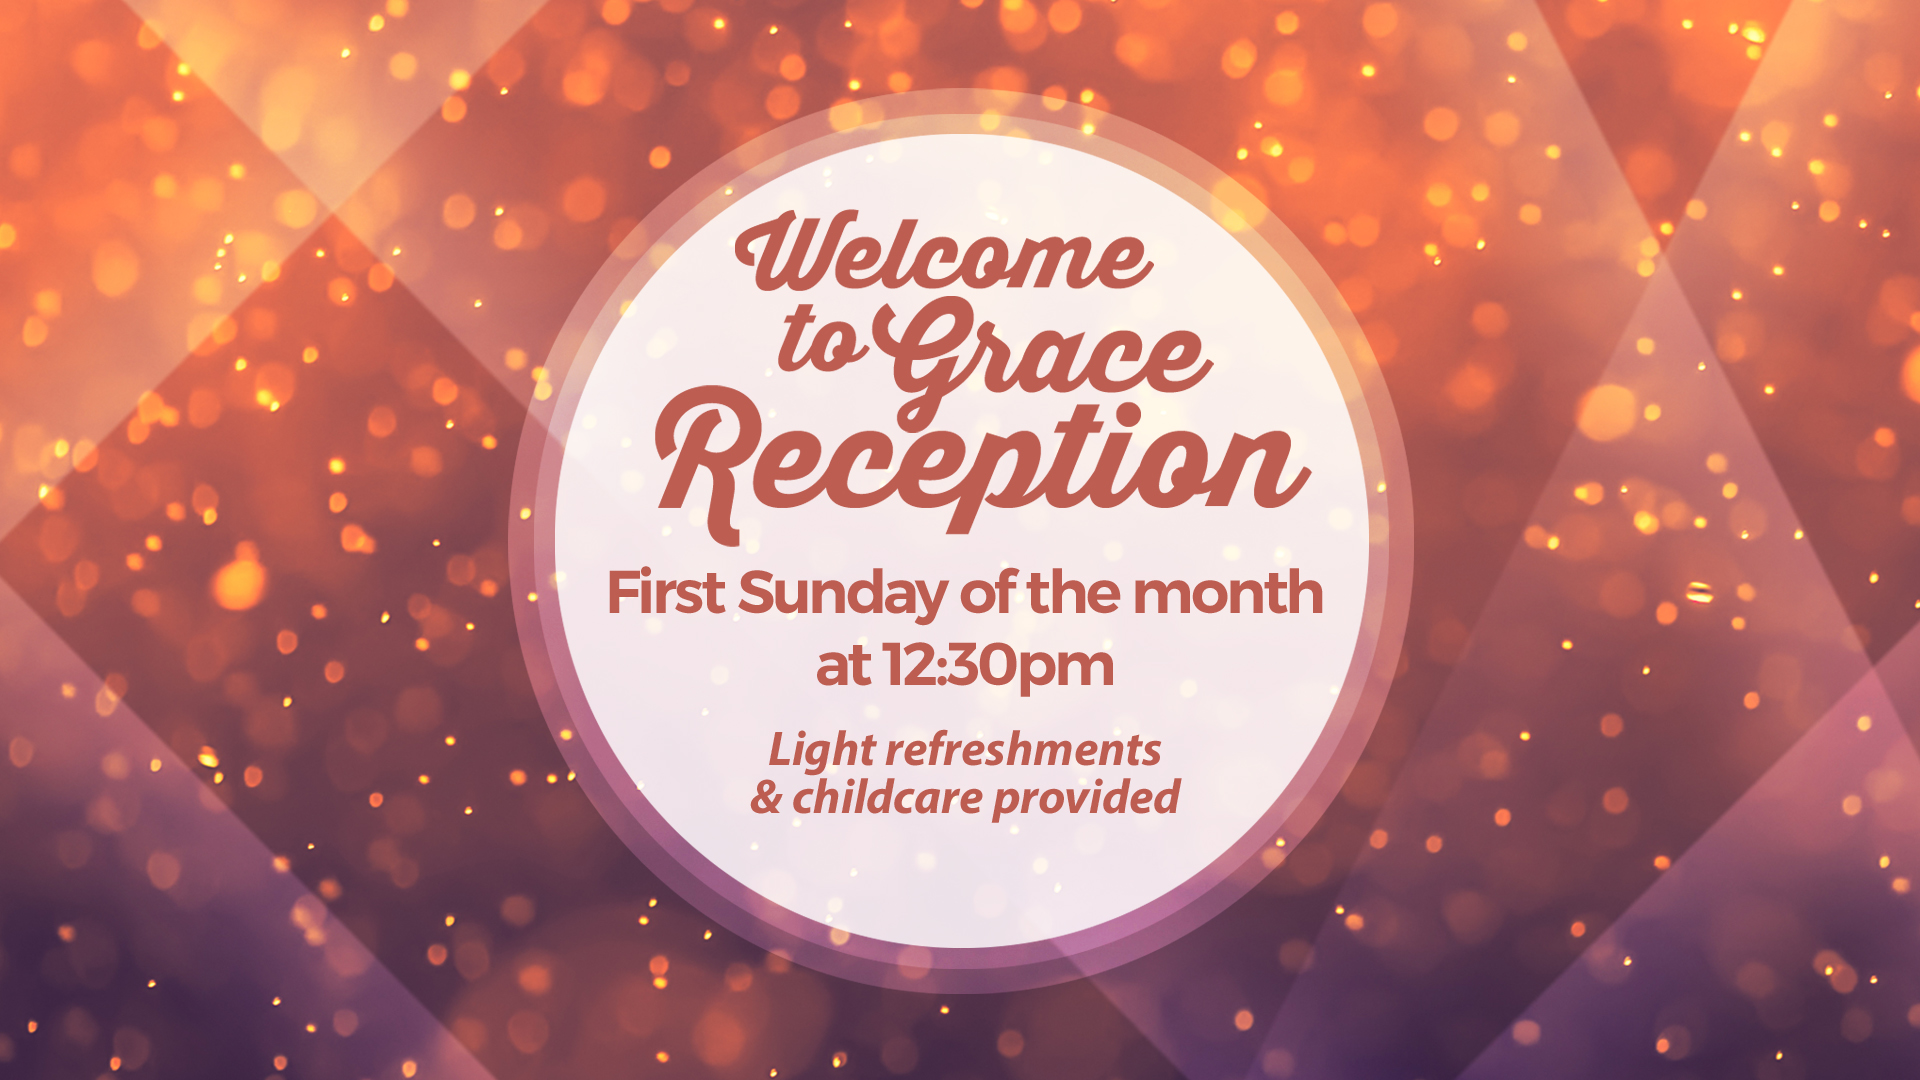 Welcome to Grace Reception